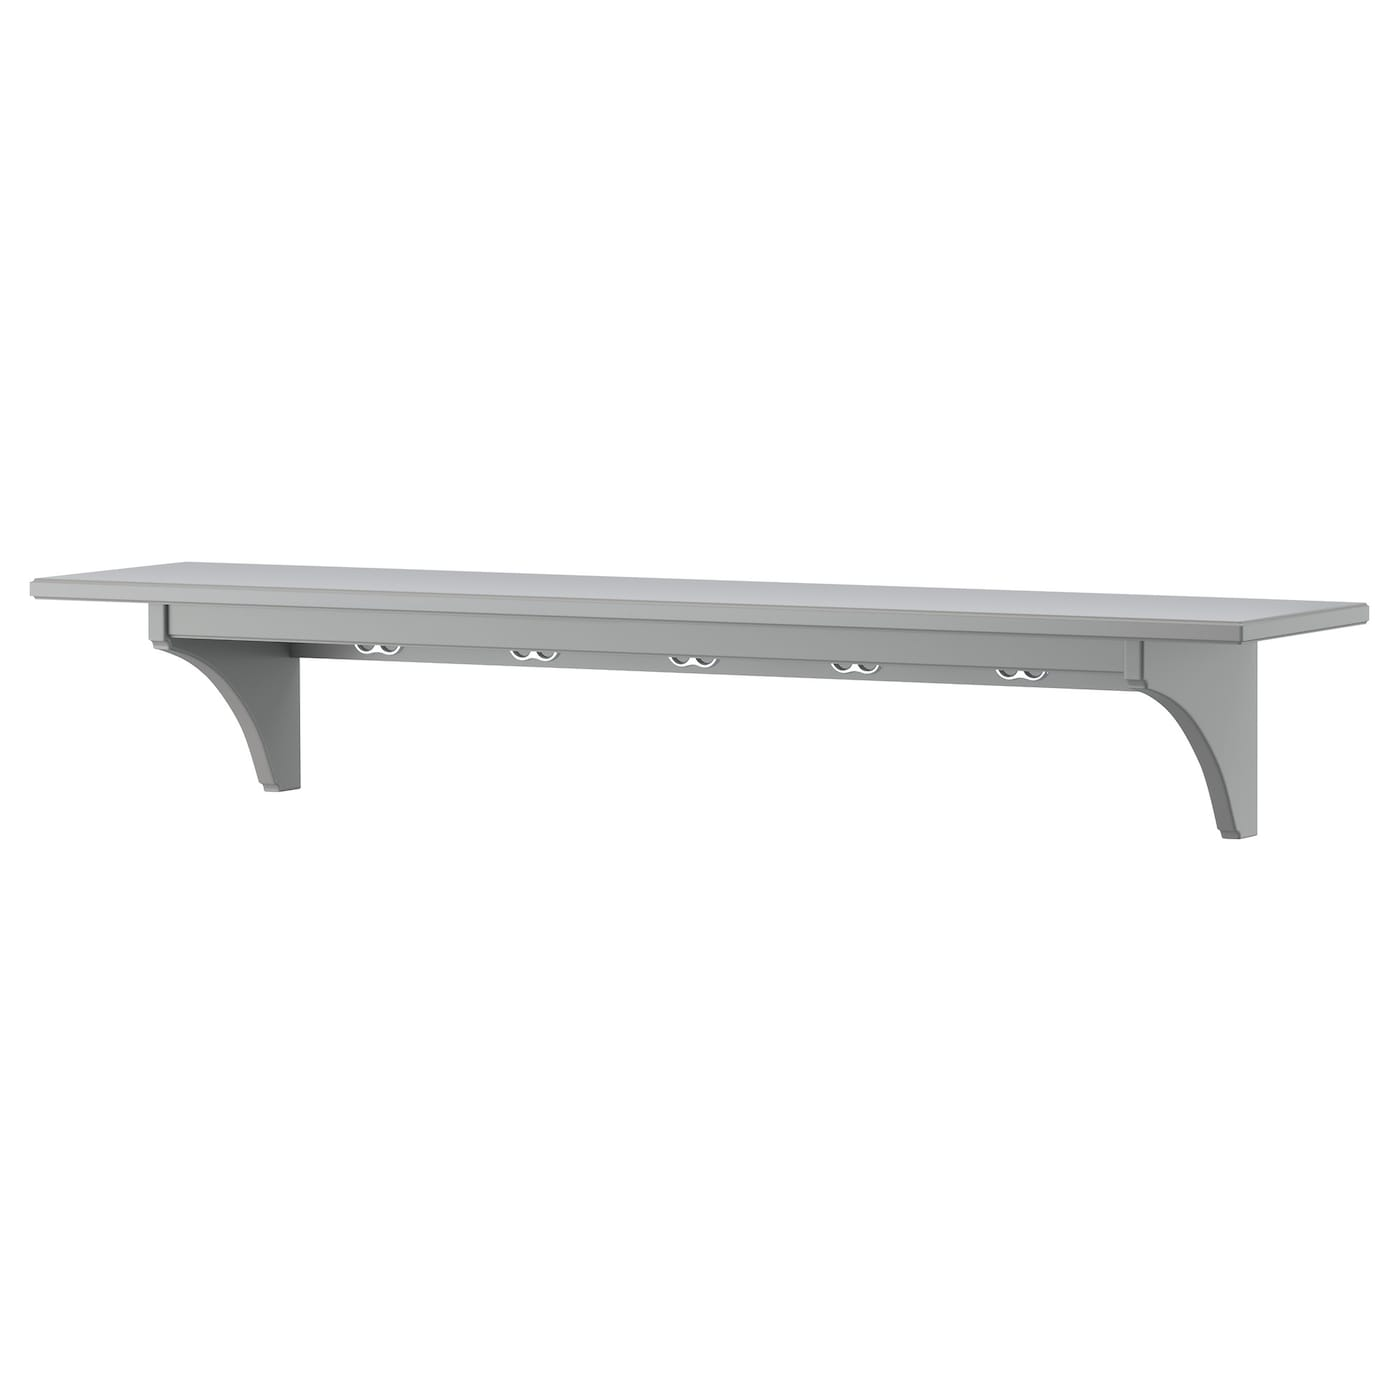 IKEA STENSTORP wall shelf